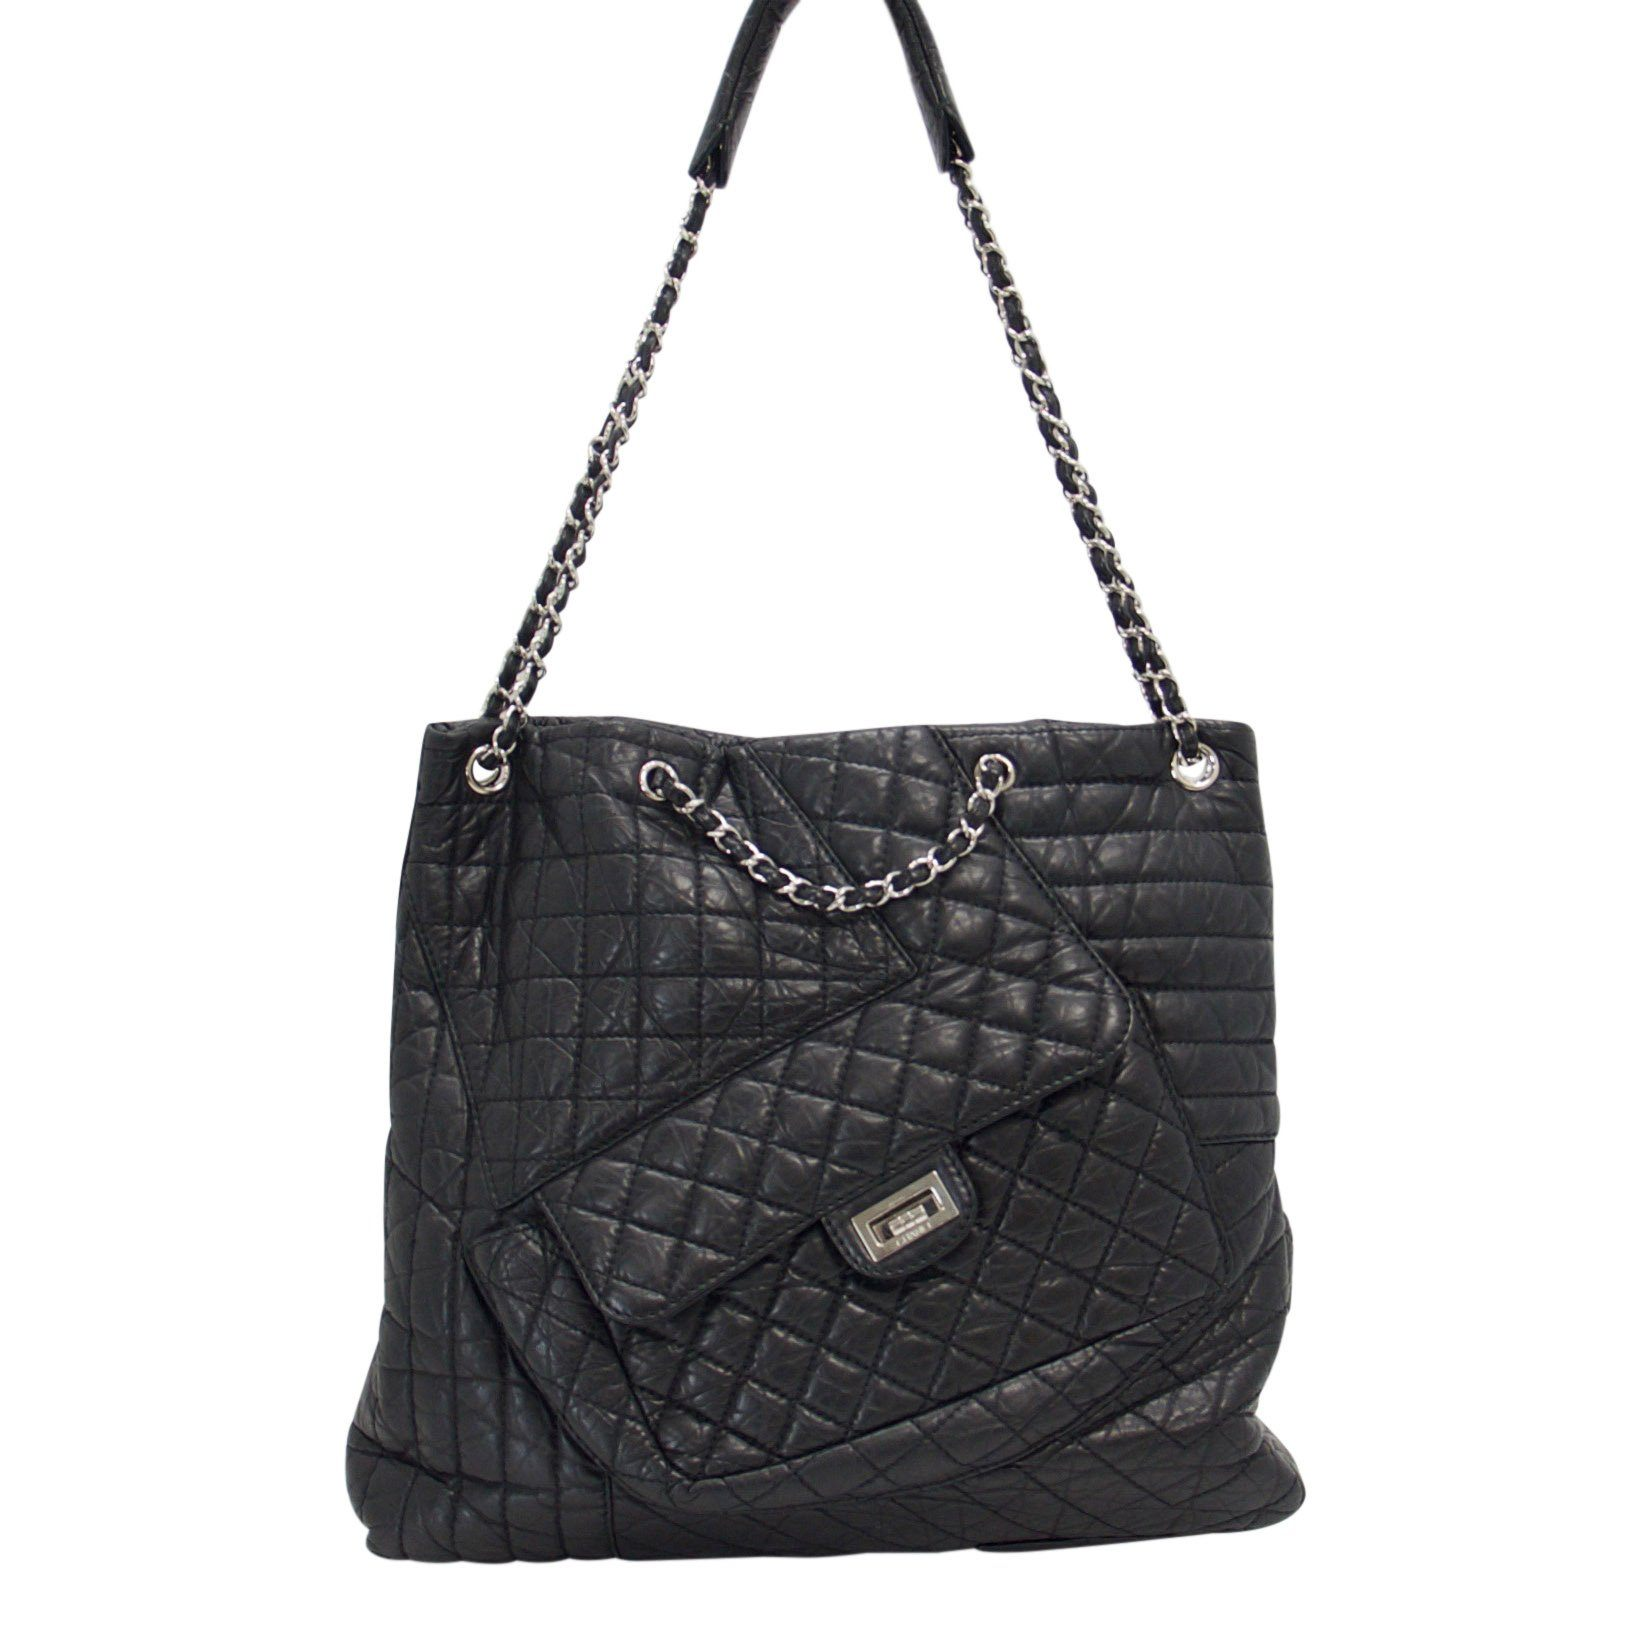 6b47abb910fa42 Chanel Karl's Cabas Tote– Oliver Jewellery